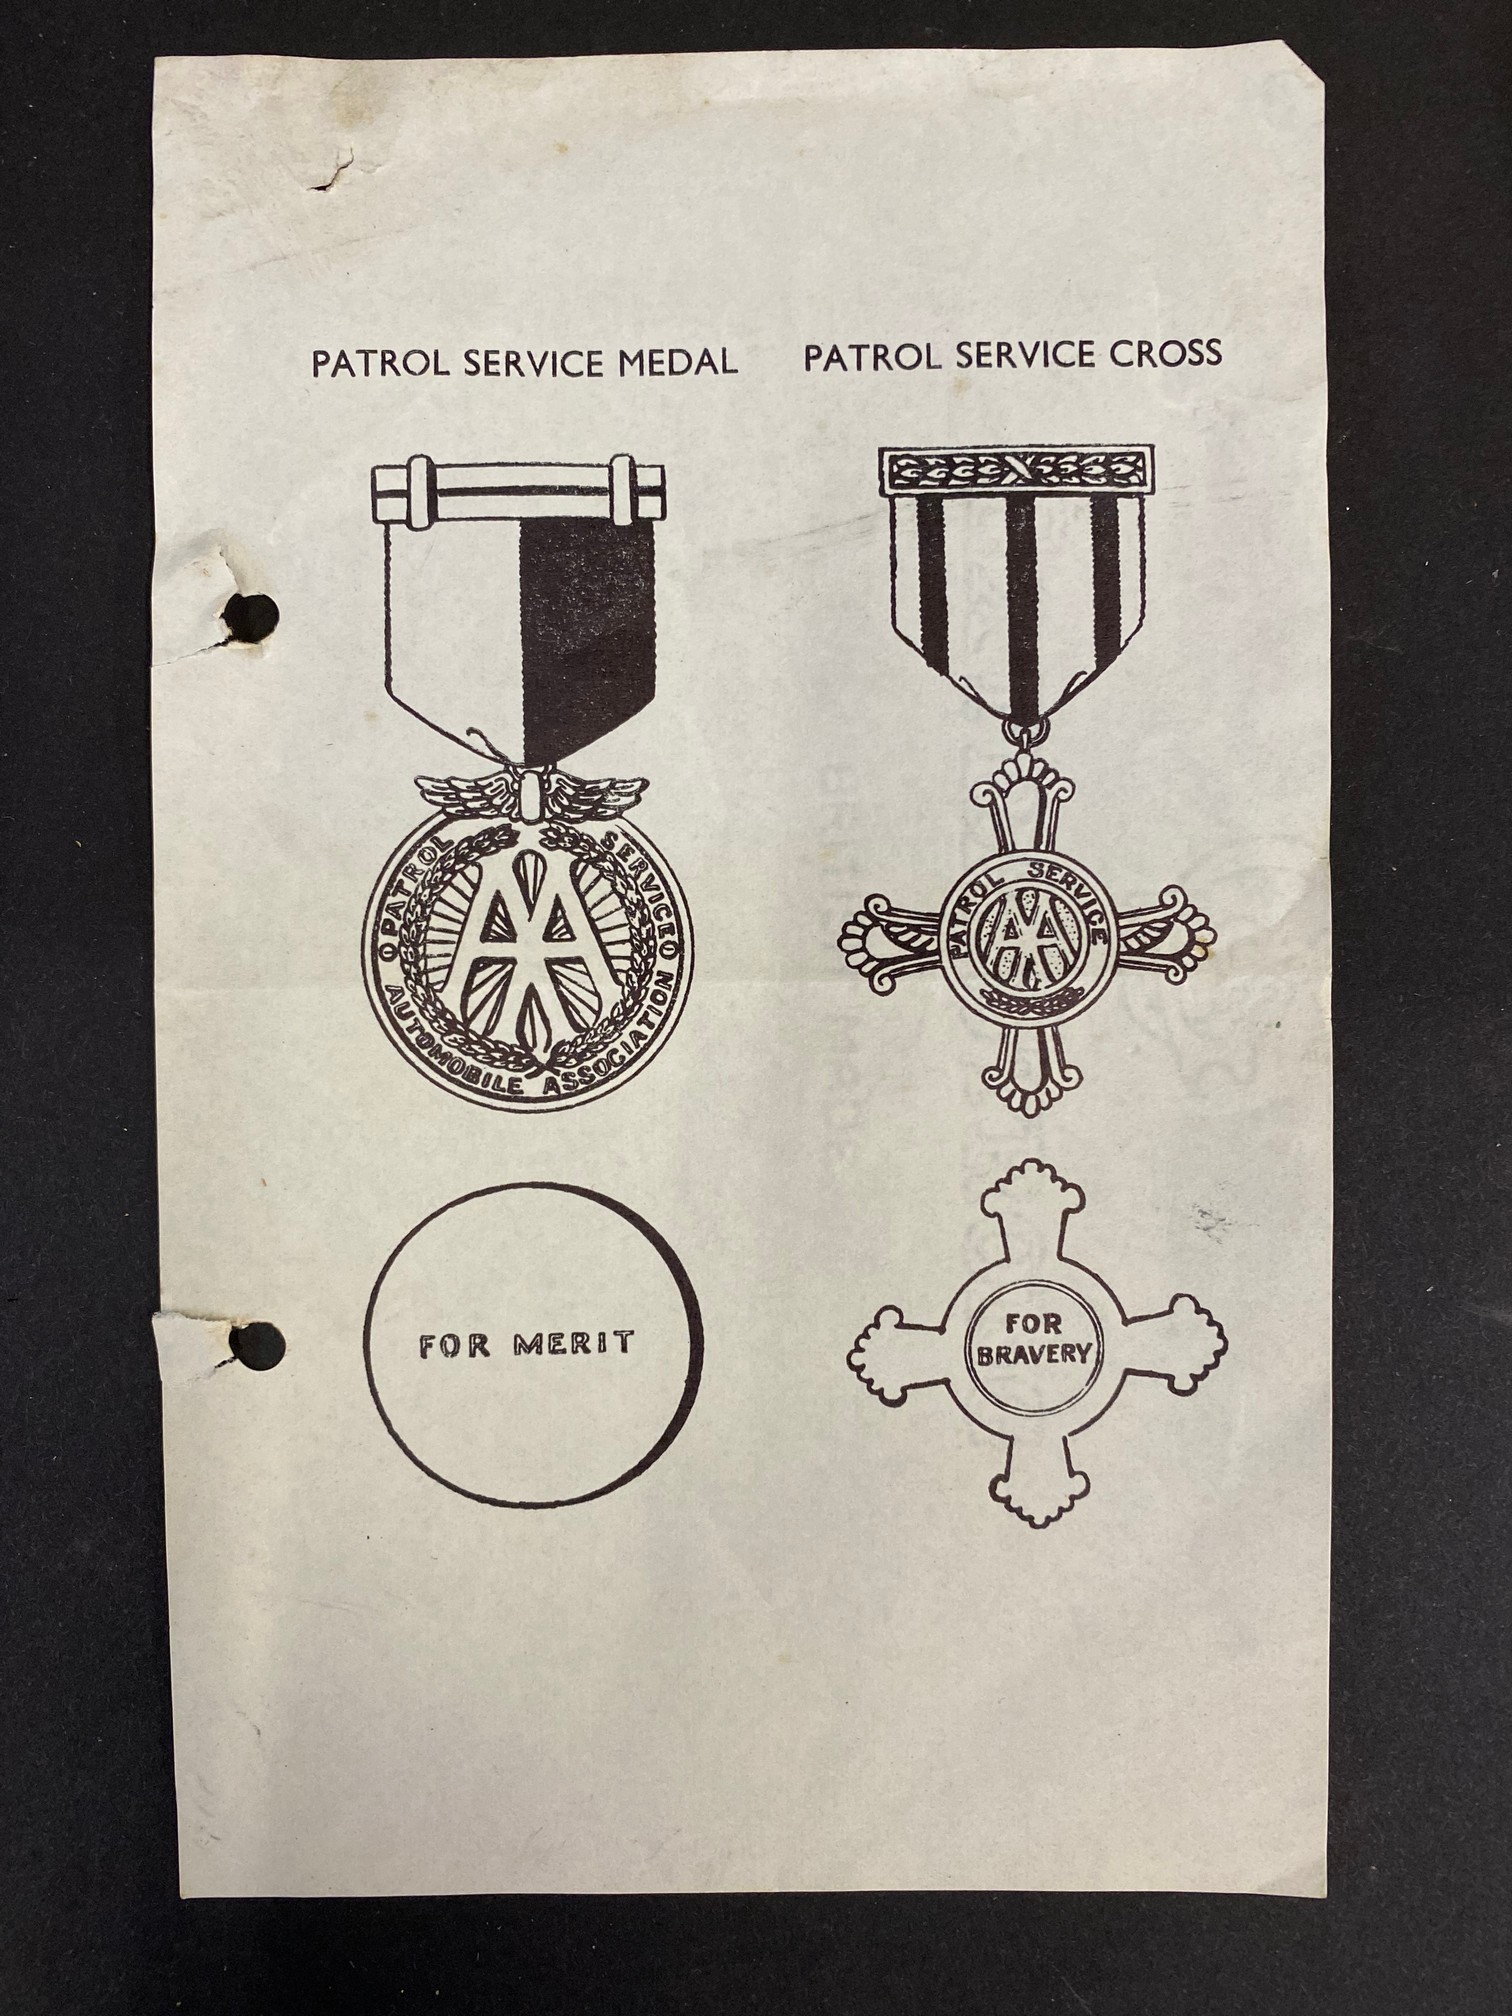 An AA patrol service medal and a patrol service cross, both in boxes of issue, awarded to Patrol - Image 5 of 8